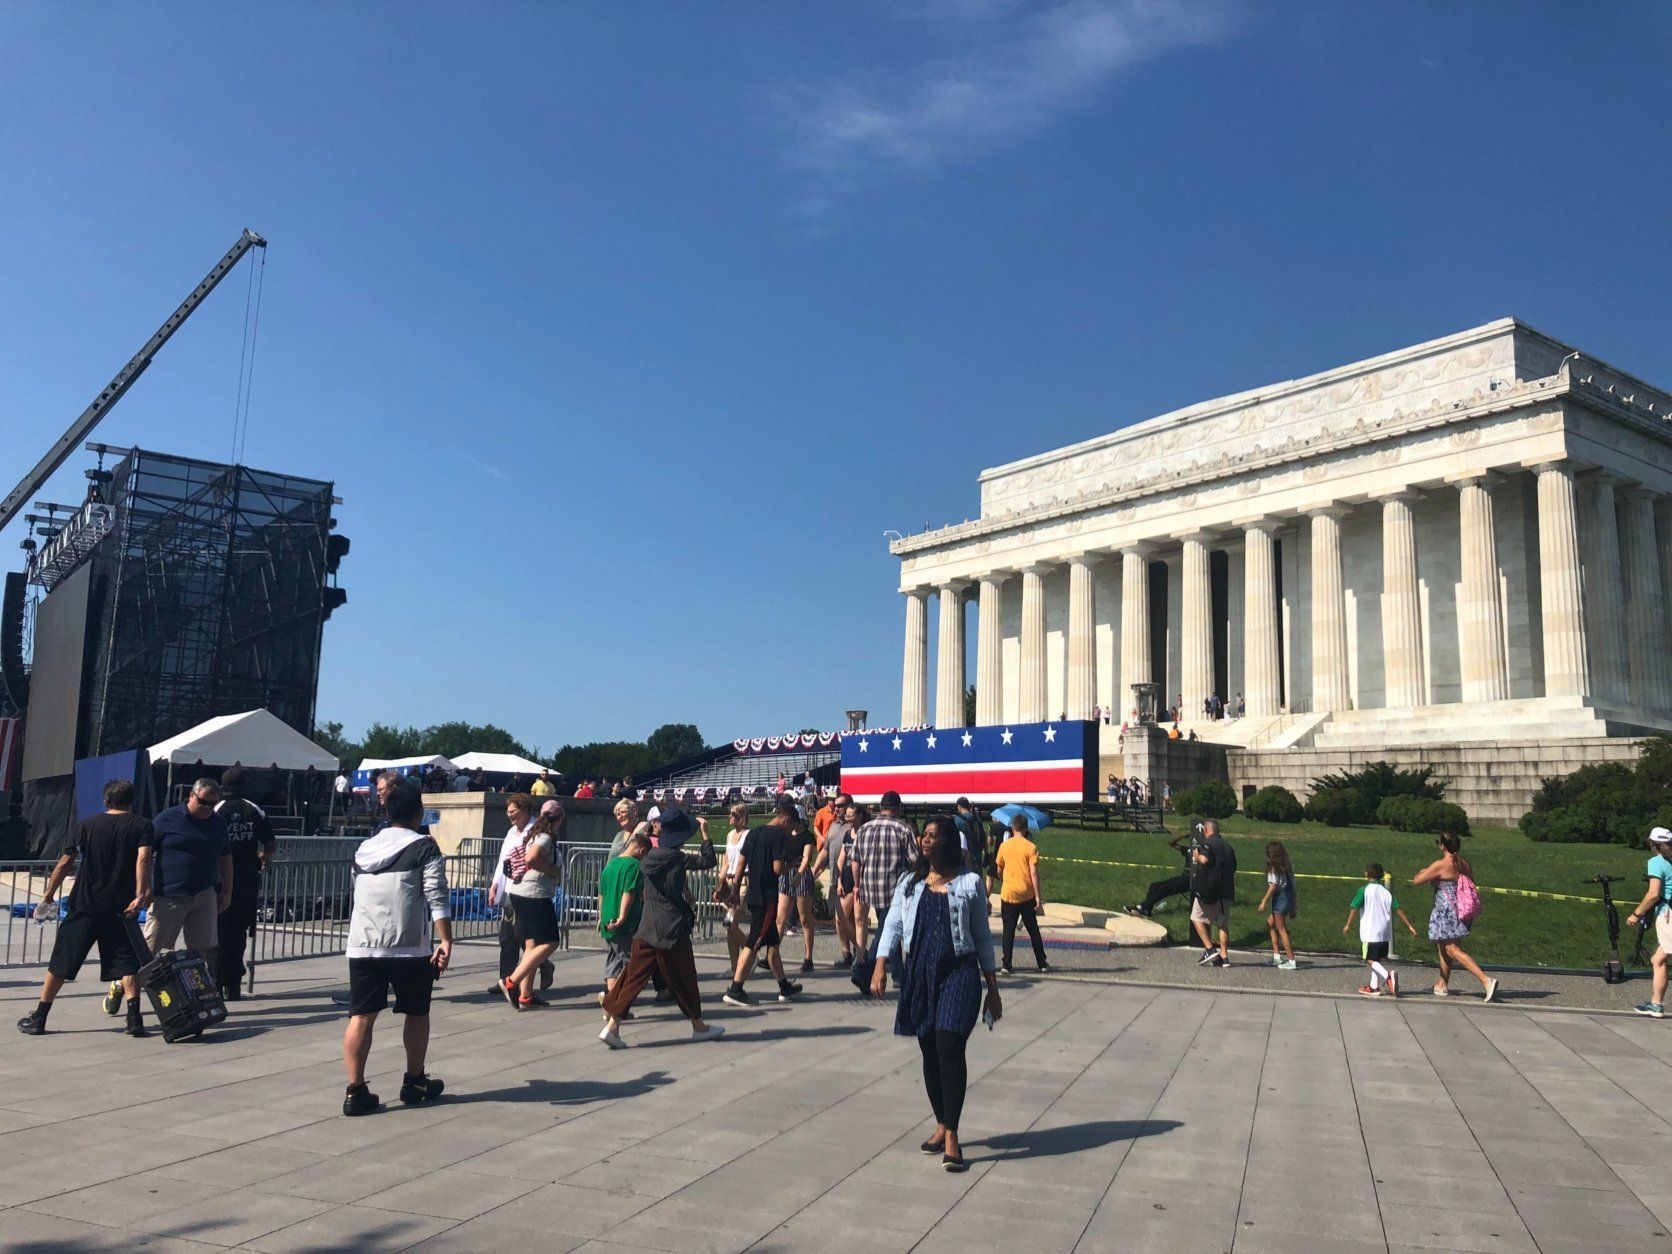 The scene in front of the Lincoln Memorial on Wednesday, July 3, 2019. (WTOP/Melissa Howell)